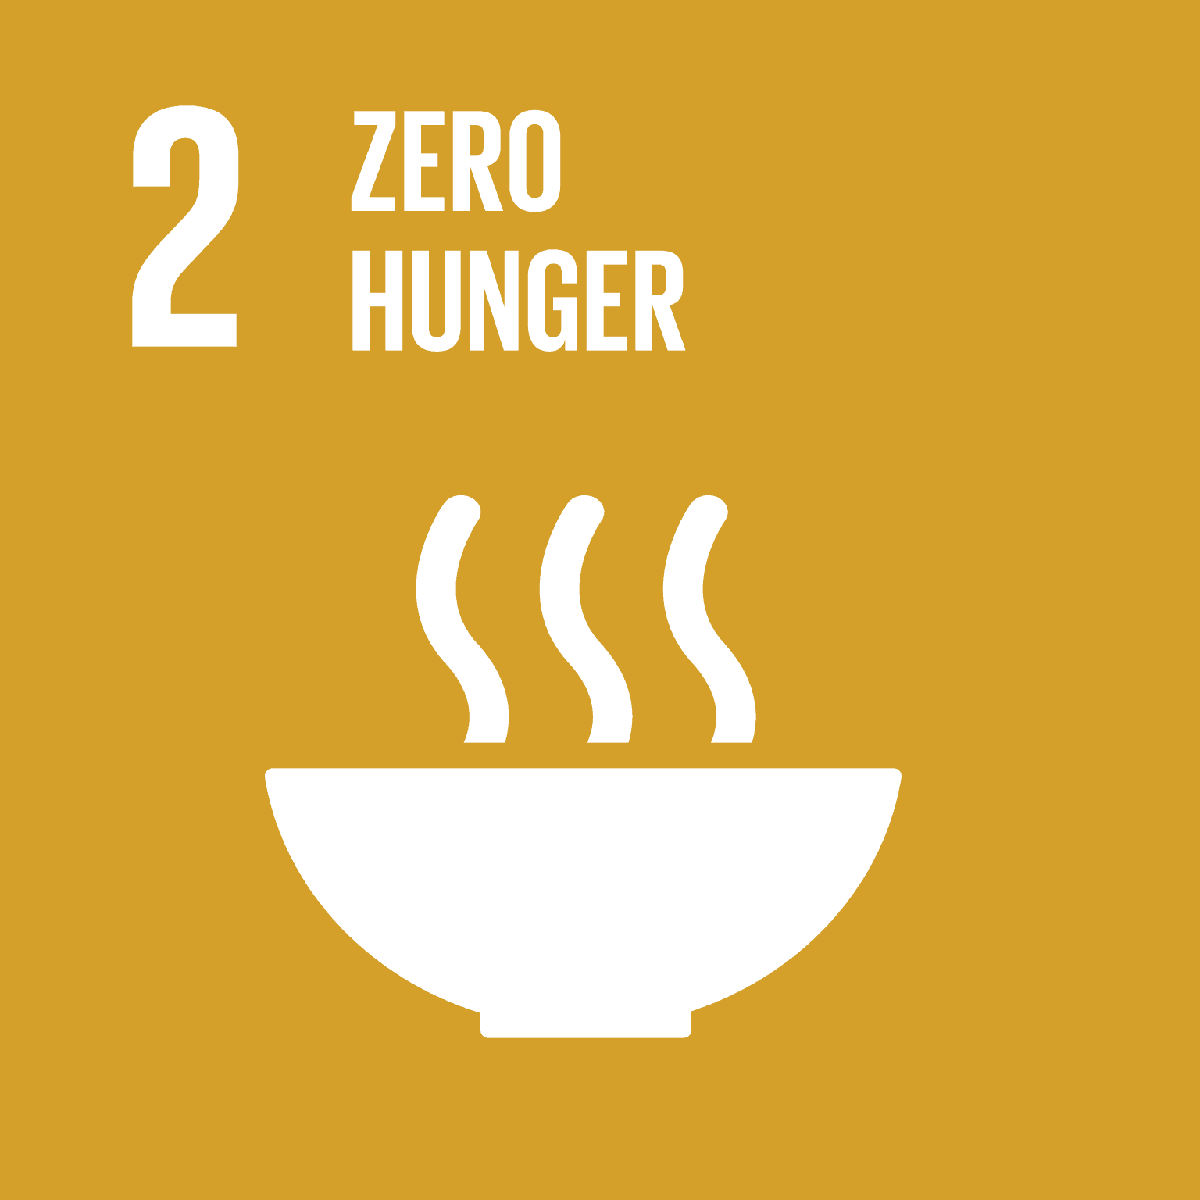 What is the sustainable development goal 2   zero hunger 846dabe9 2729 4681 b476 f0313a453409